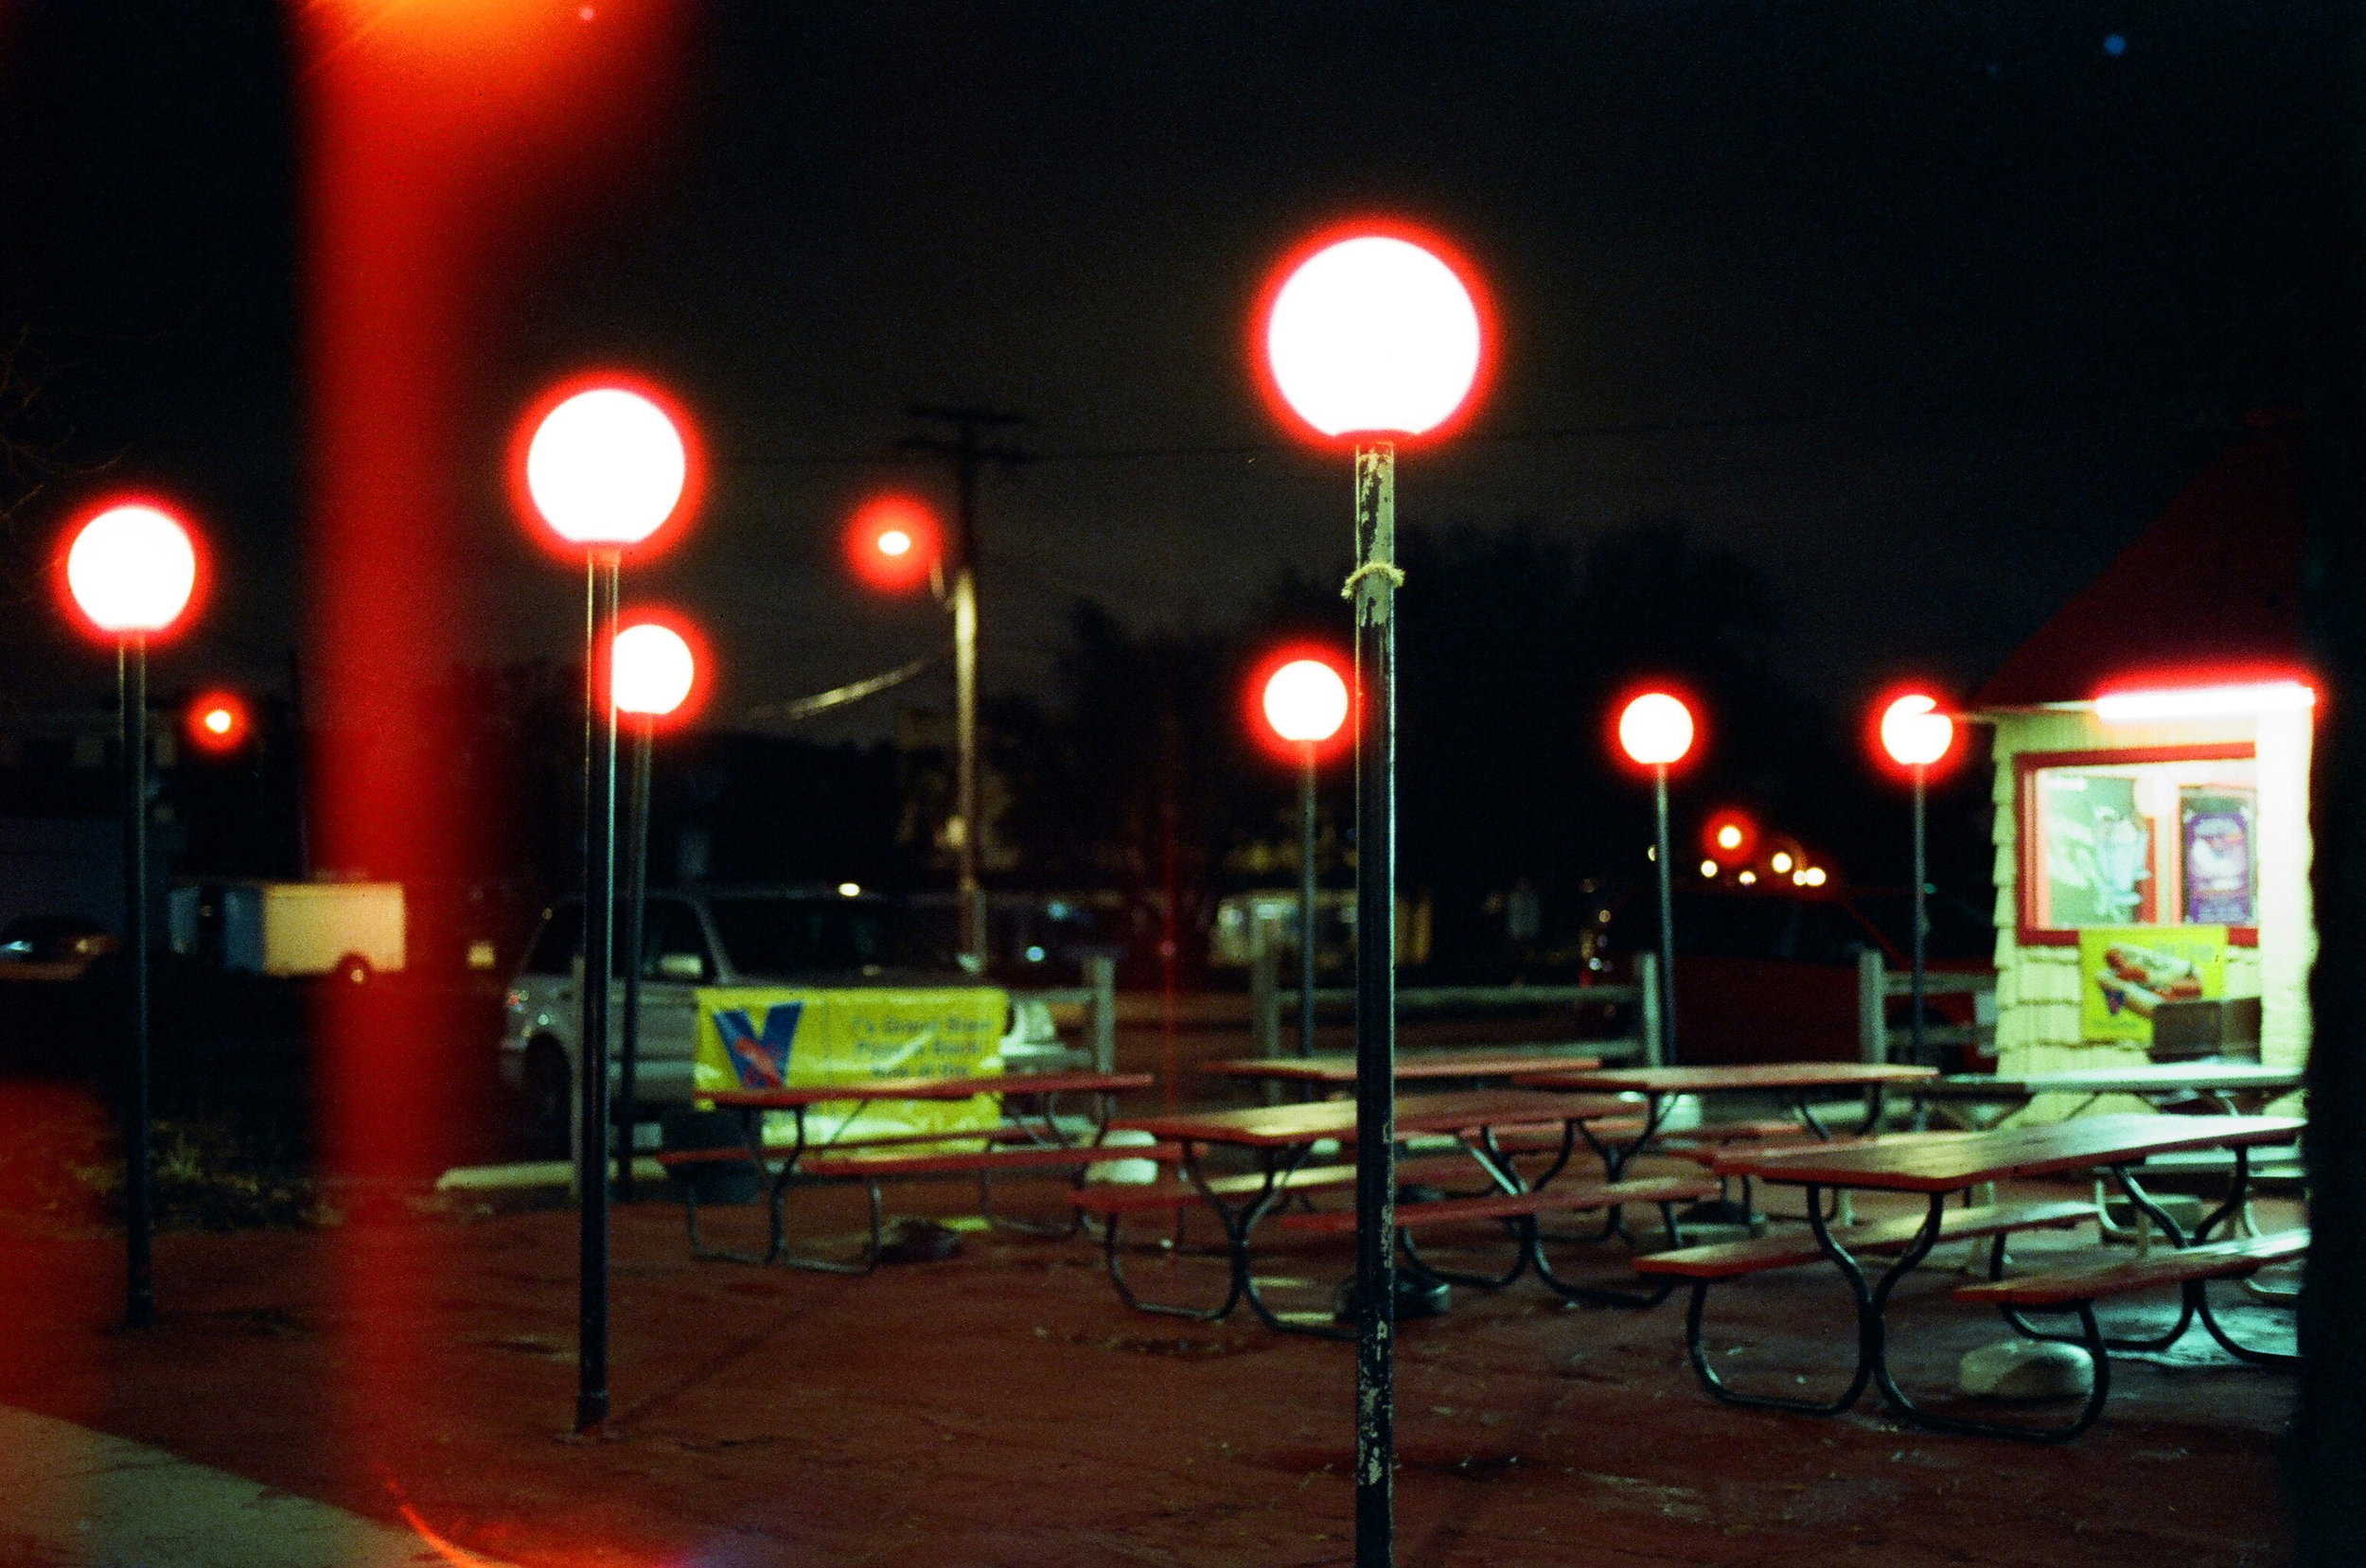 Cinestill 800t with Nikon F3 by ZShare Photovisions